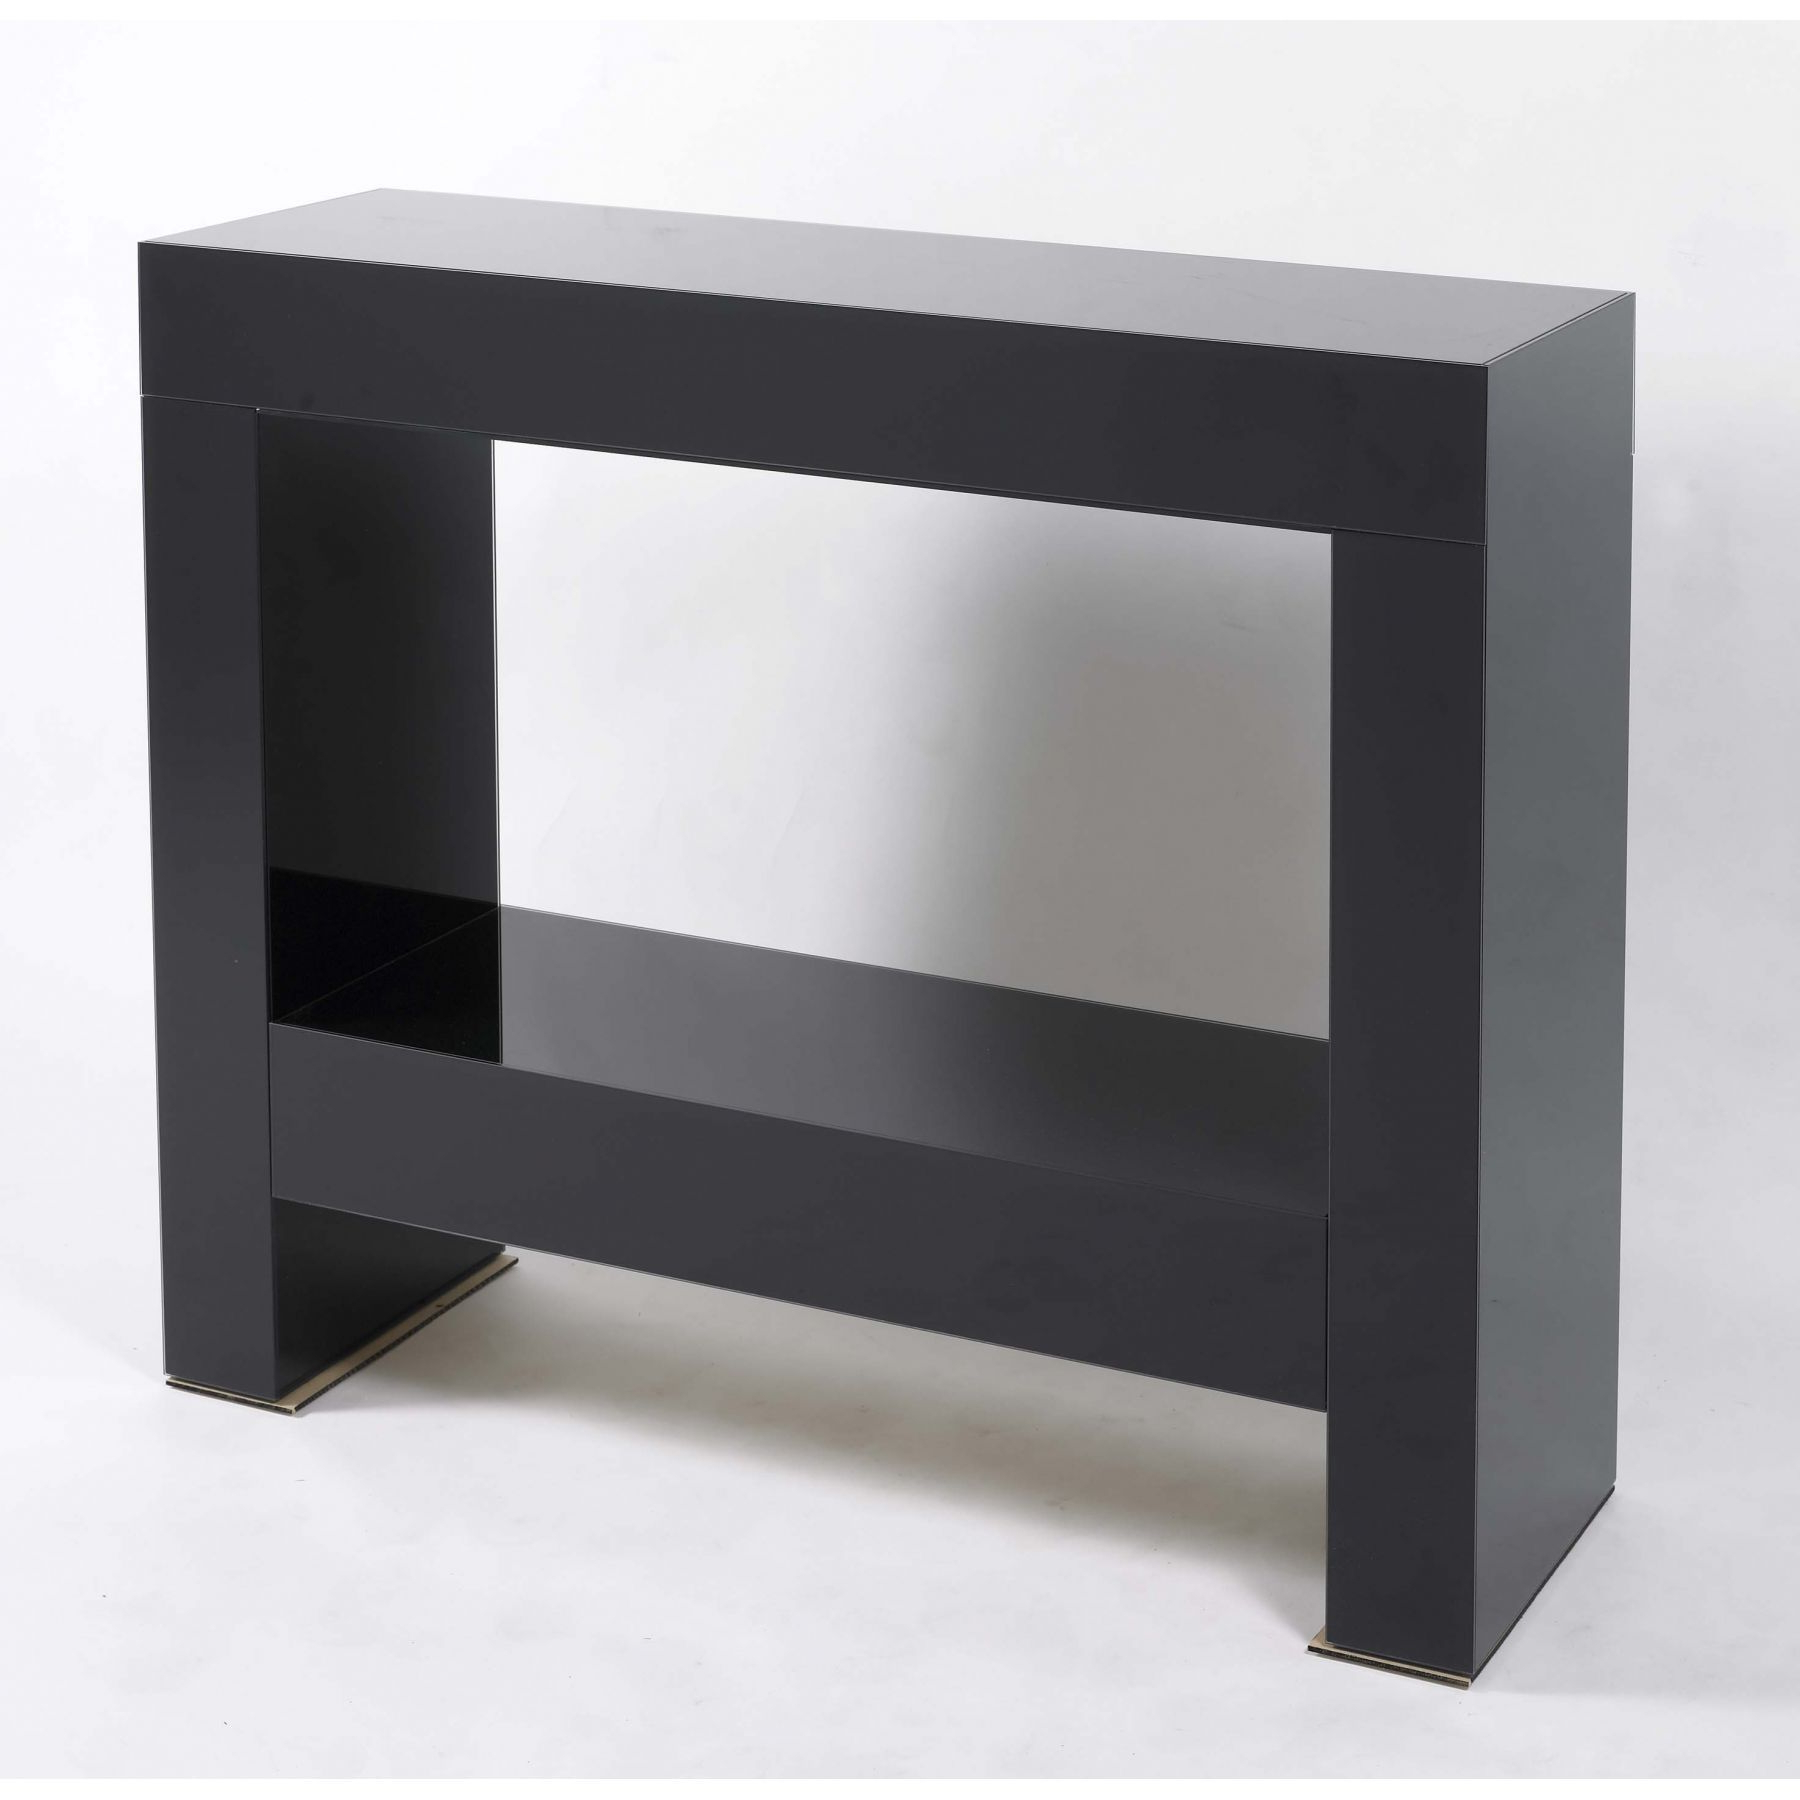 Parsons Clear Glass Top & Dark Steel Base 48X16 Console Tables With Regard To Popular Contemporary Black Parsons Console Table With Glossy Finish (View 7 of 20)